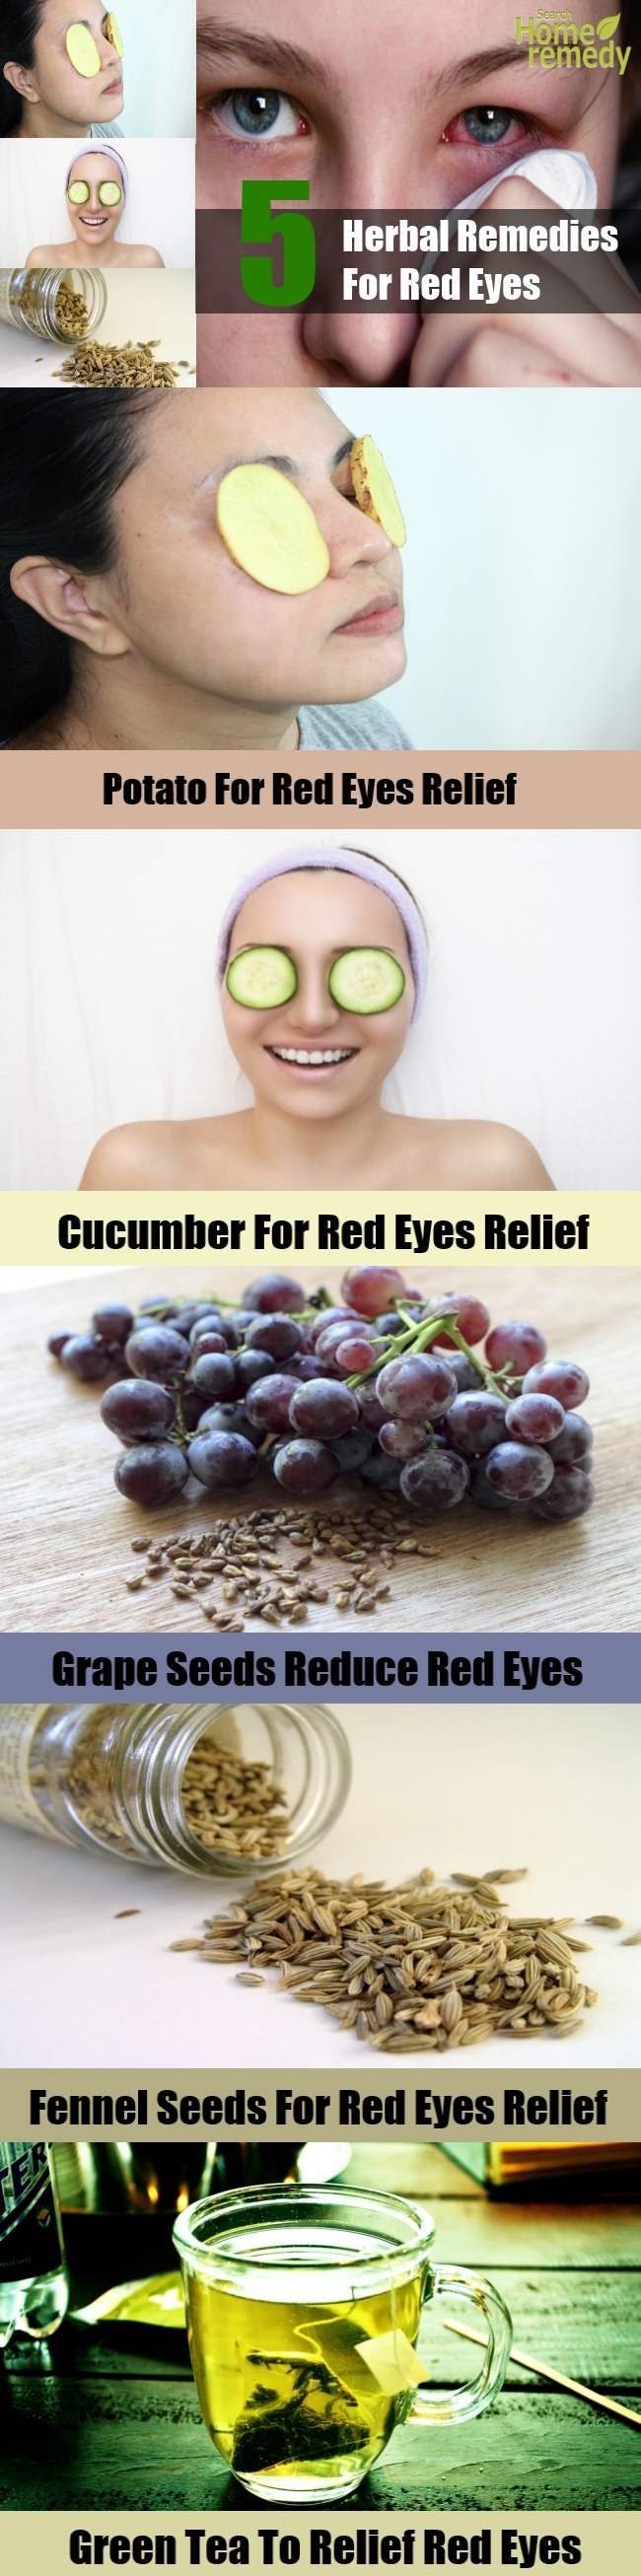 Top 5 Herbal Remedies For Red Eyes